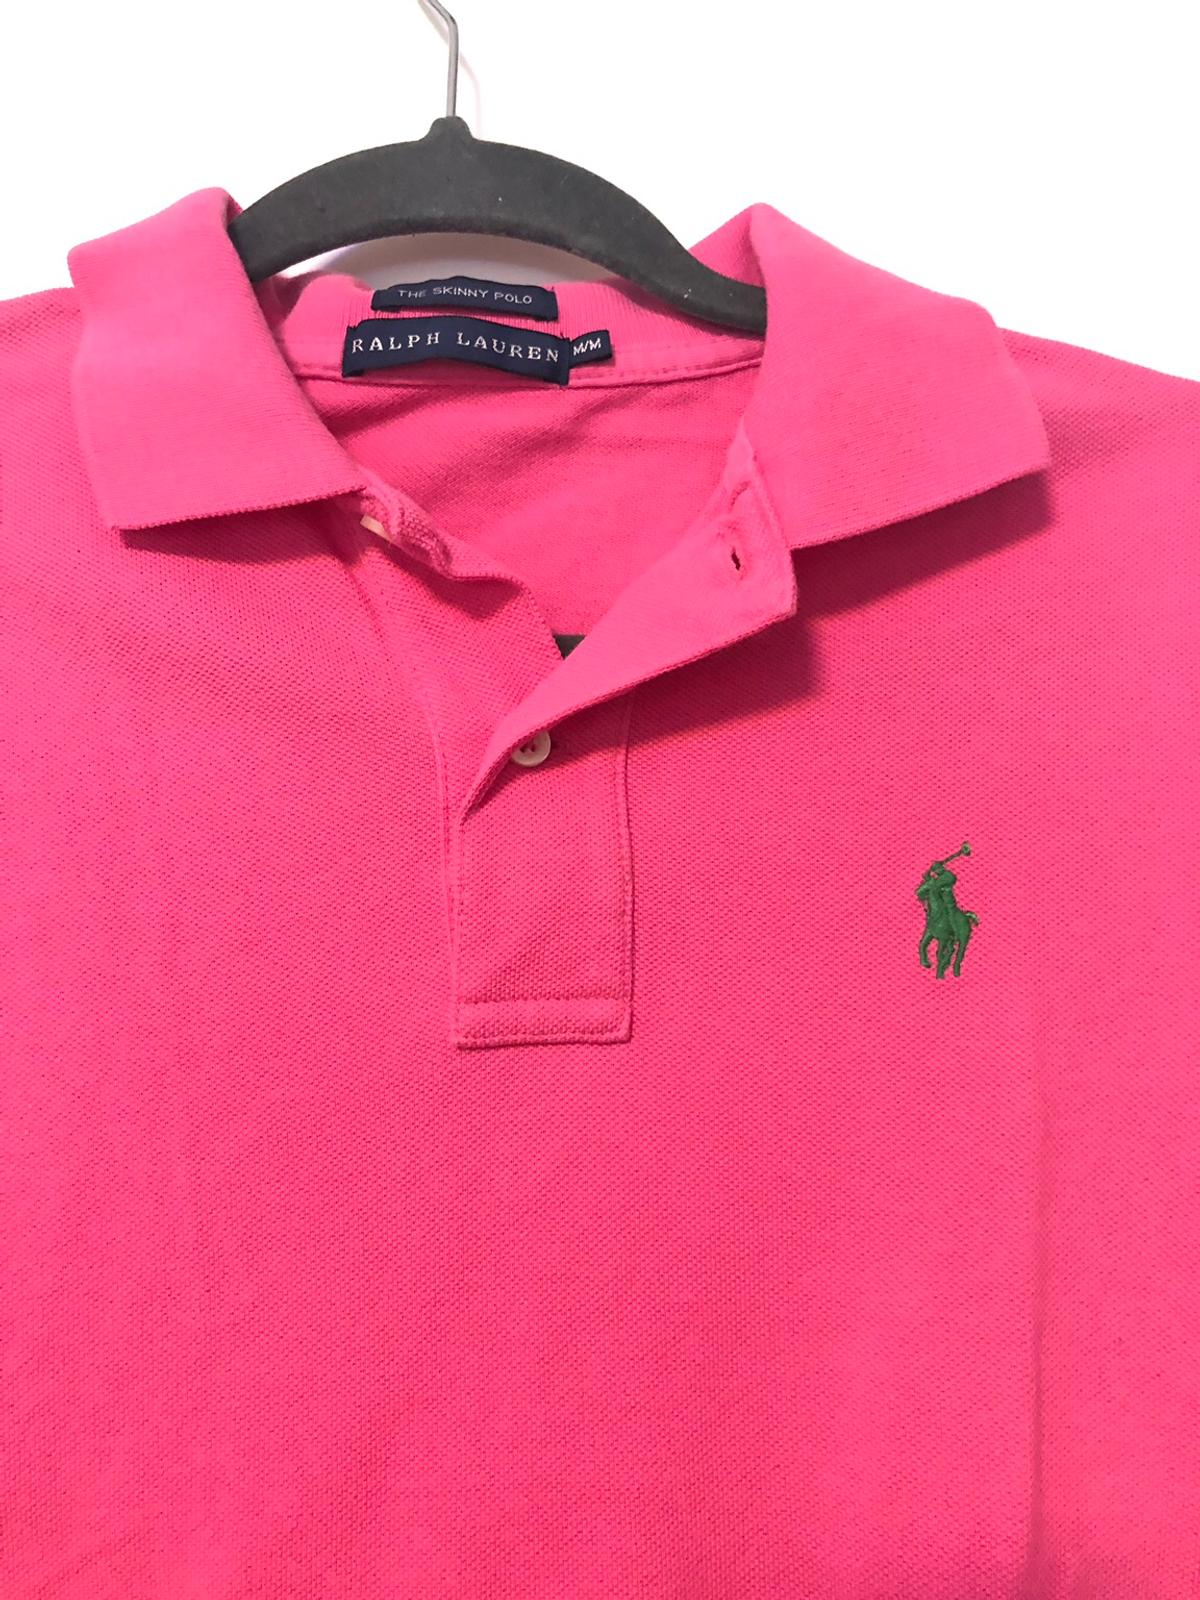 low priced c78d4 b1350 Polo Shirt Ralph Lauren Damen pink